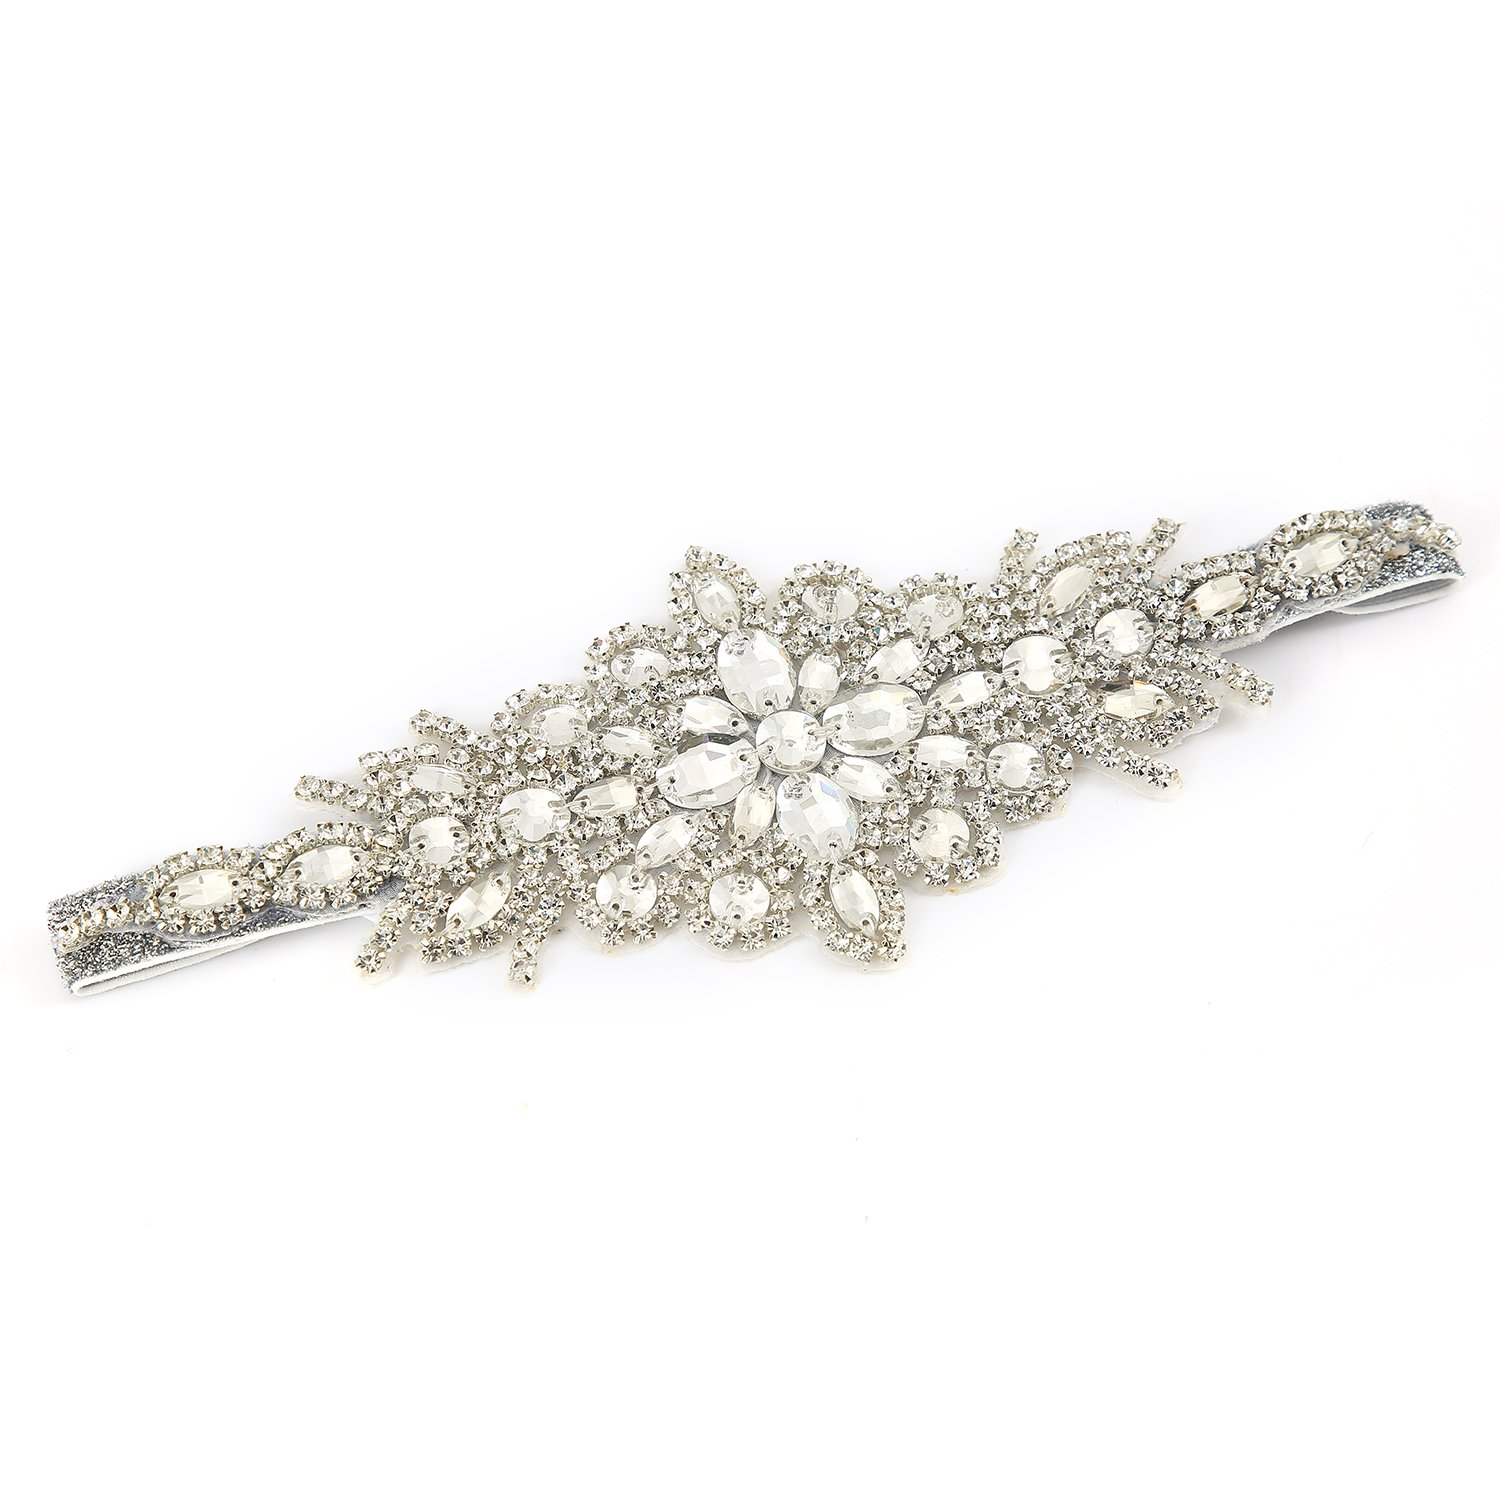 1920s Hairstyles History- Long Hair to Bobbed Hair Metme Crystal Rhinestone Headband Retro Style Hair Accessories Satin Ribbon for 20s Event Party $17.99 AT vintagedancer.com